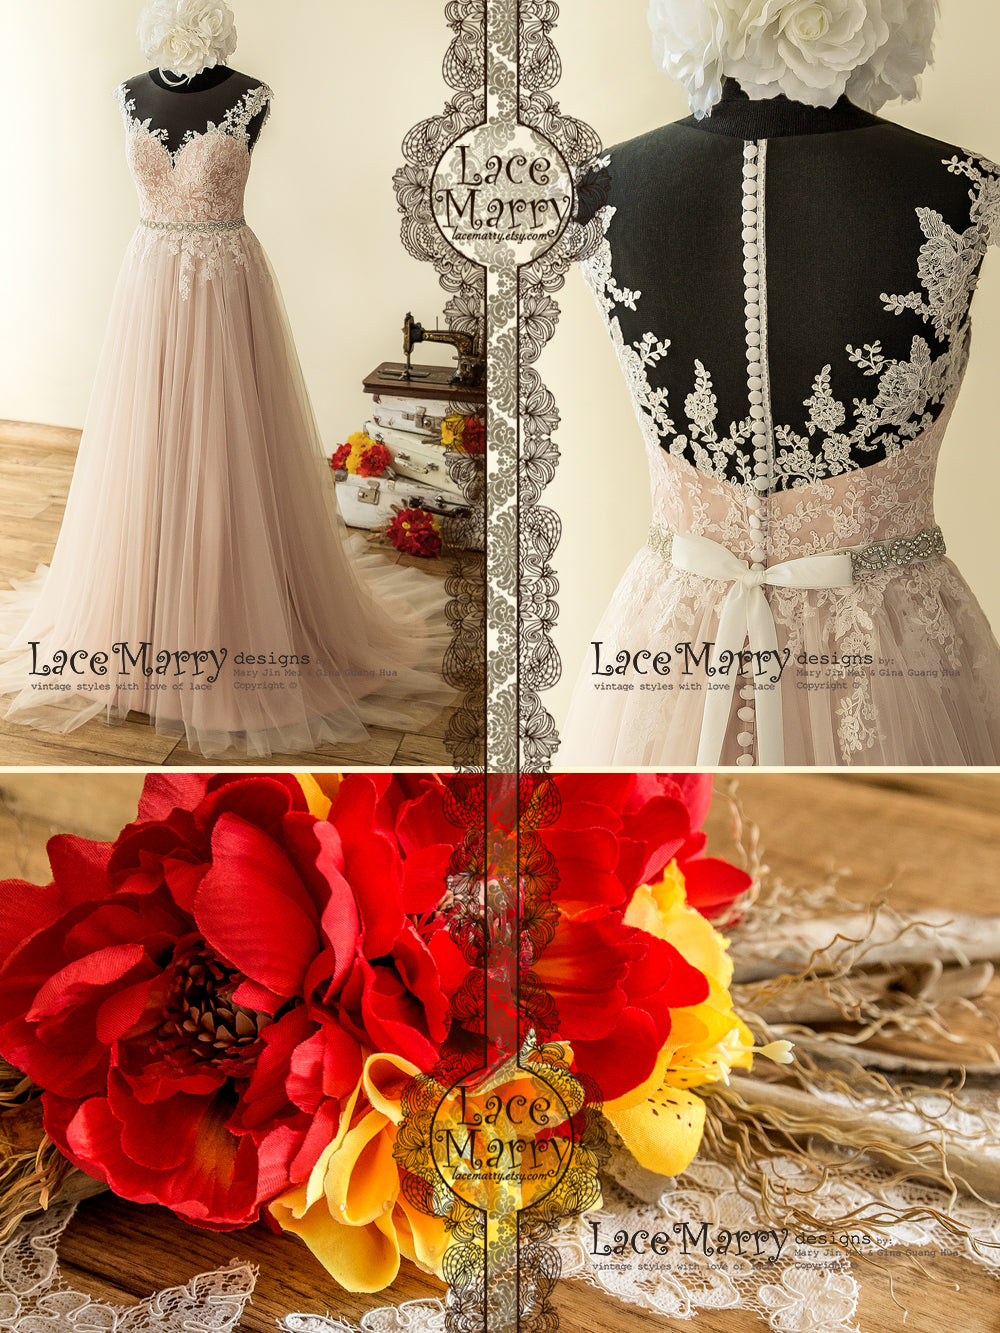 Champagne Dusty Pink Wedding Dress with Airy Tulle Skirt and Rose Flower Lace Appliqué, Illusion Sheer Neckline and Back with Beaded Sash